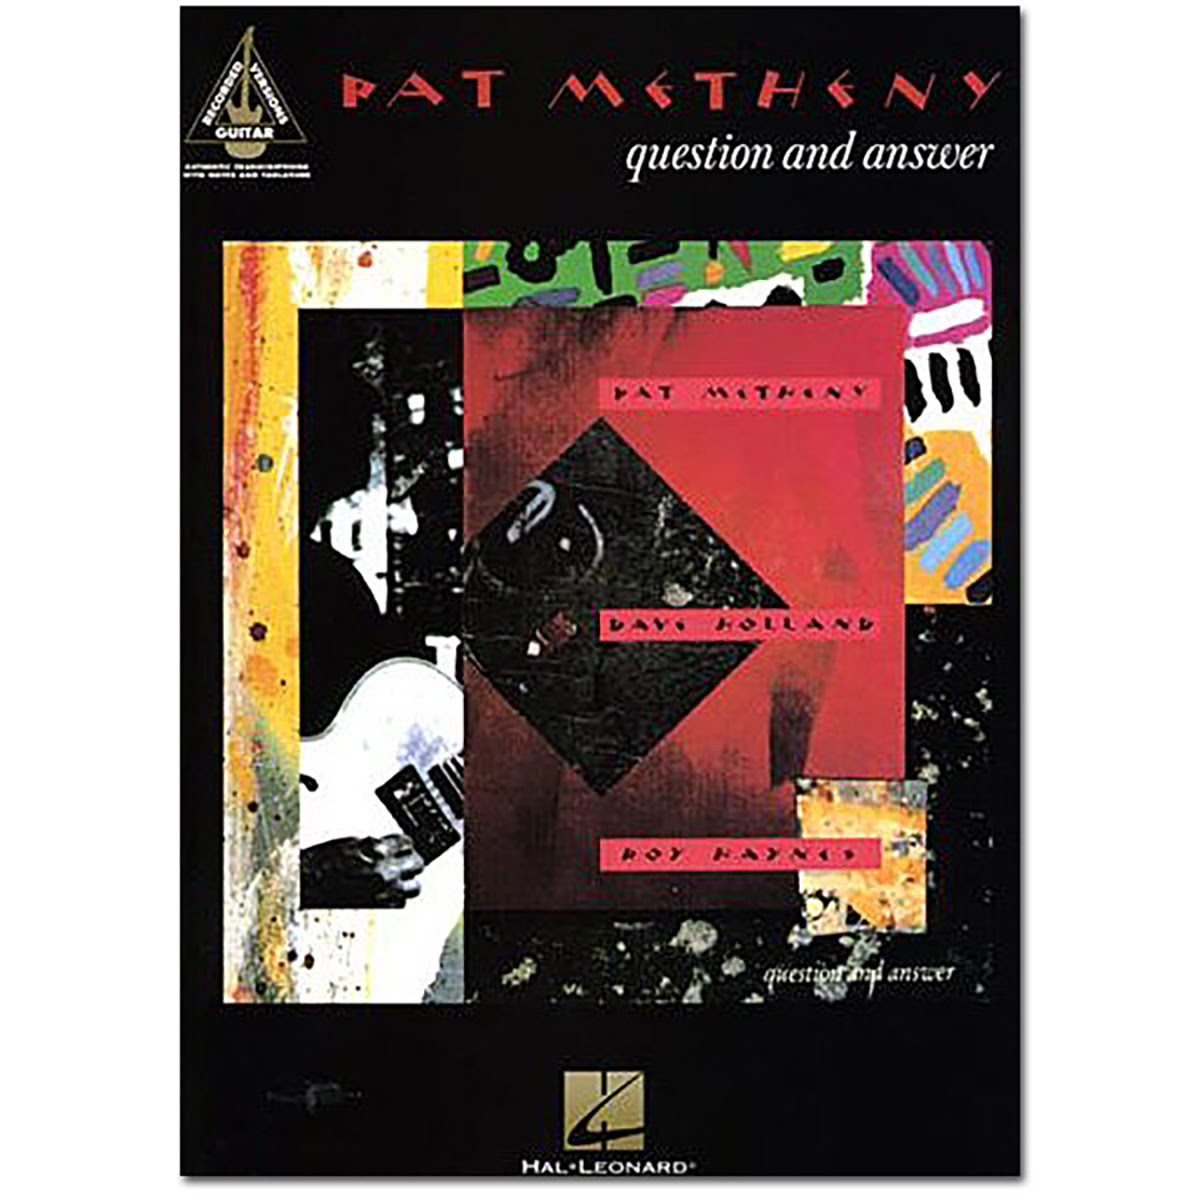 Pat Metheny - Question and Answer Song Book | Musictoday ...